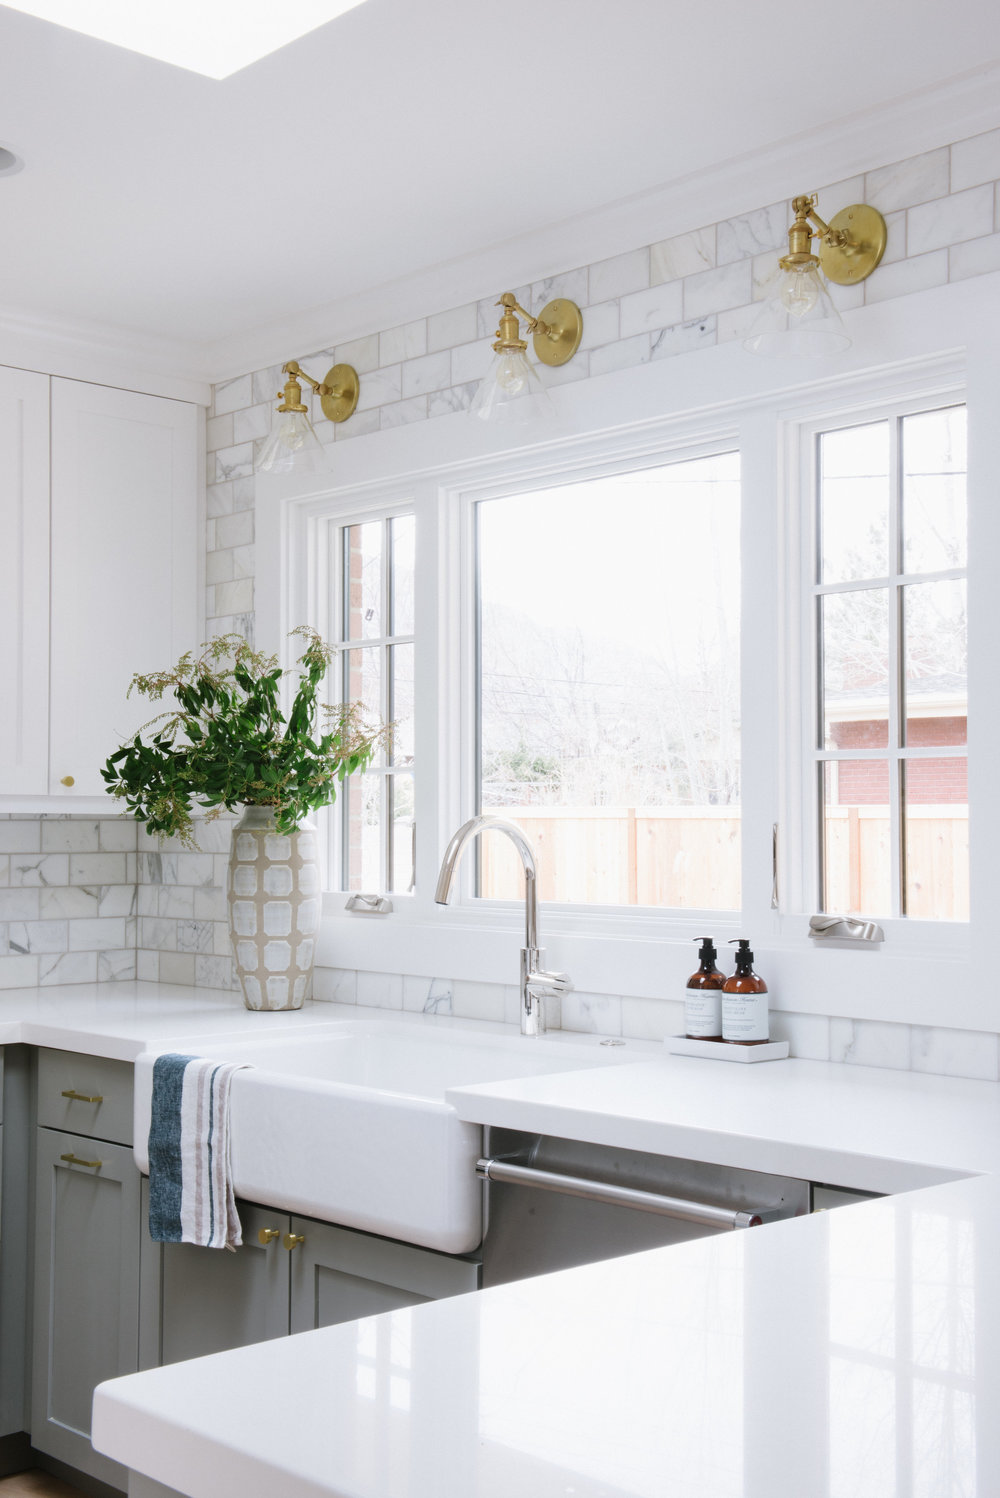 White farmhouse sink in modern kitchen